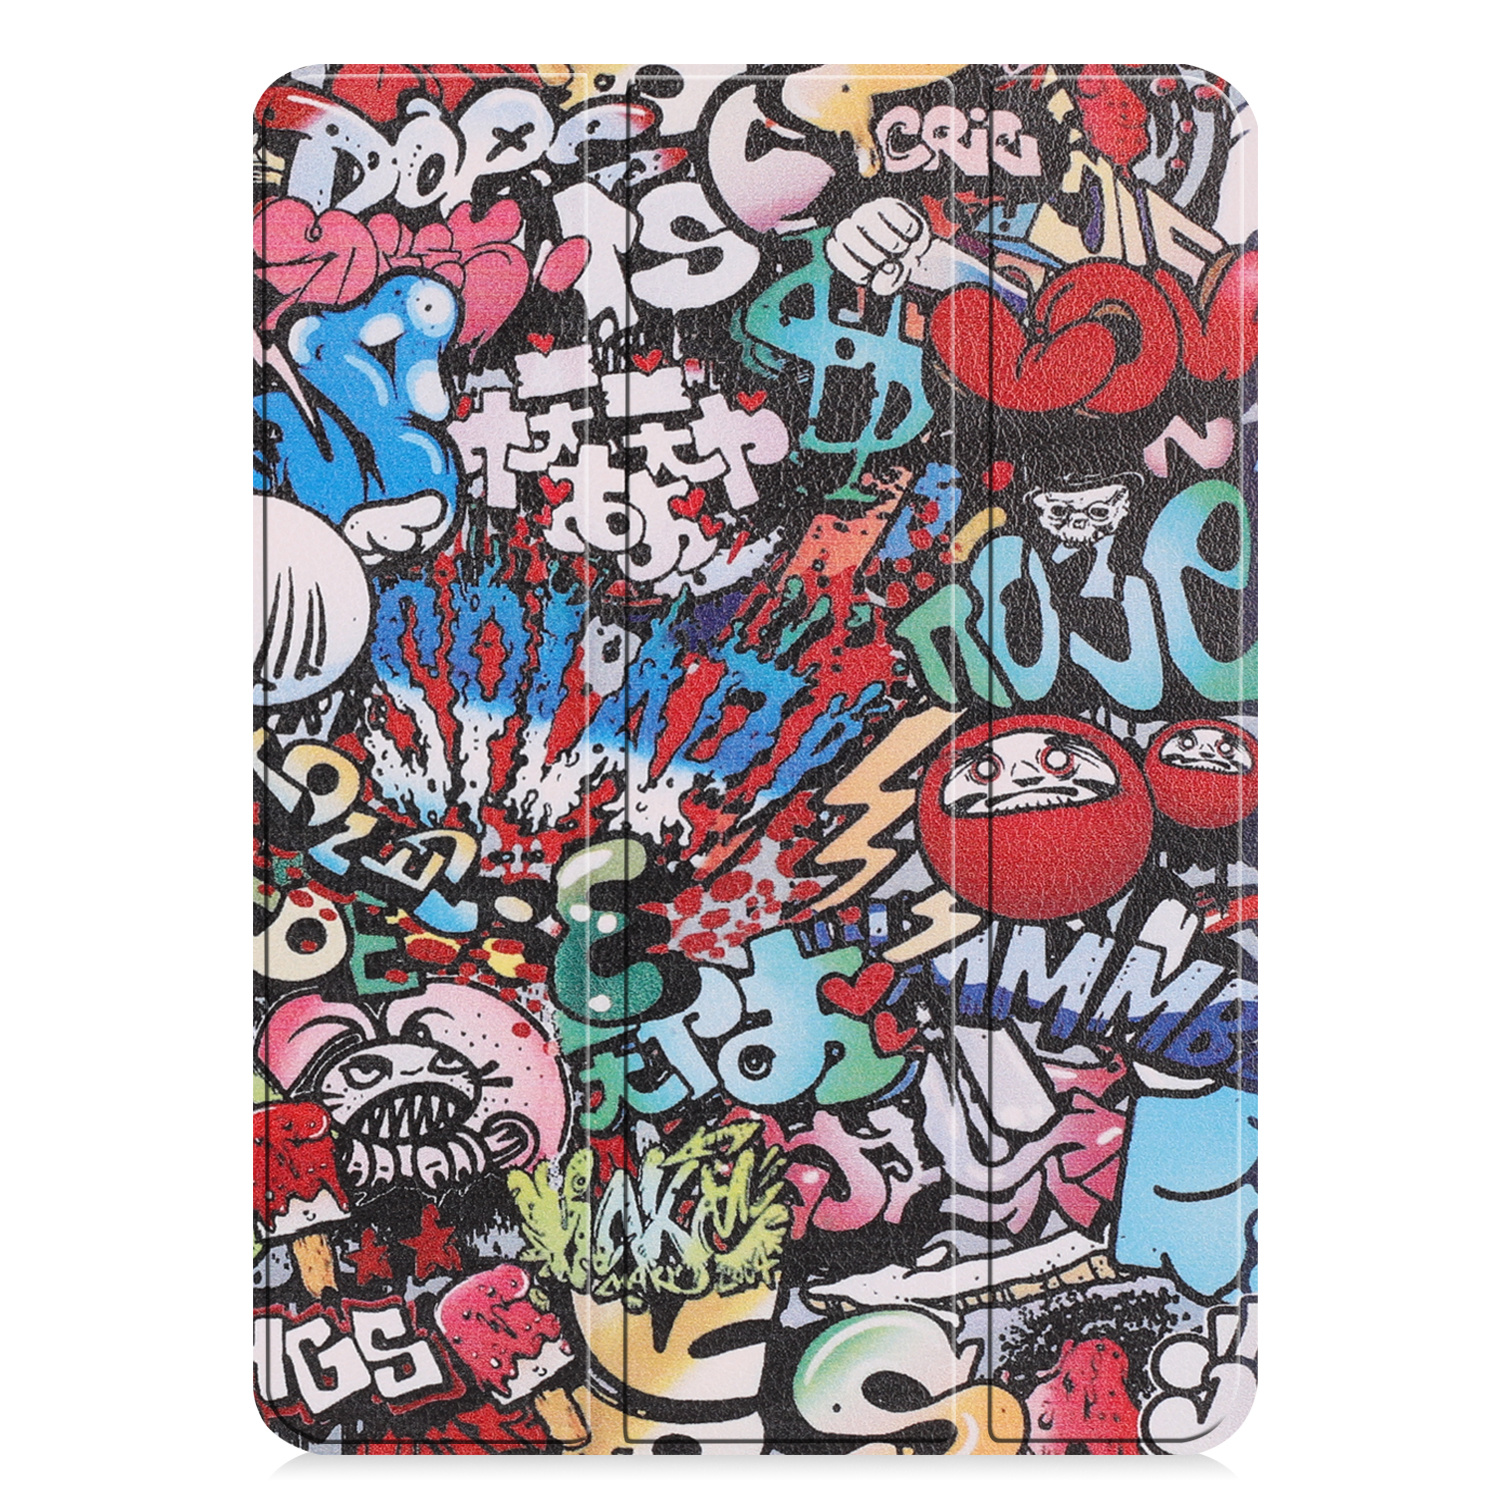 Lunso 3-Vouw sleepcover hoes Graffiti voor de iPad Pro 11 inch (2020)